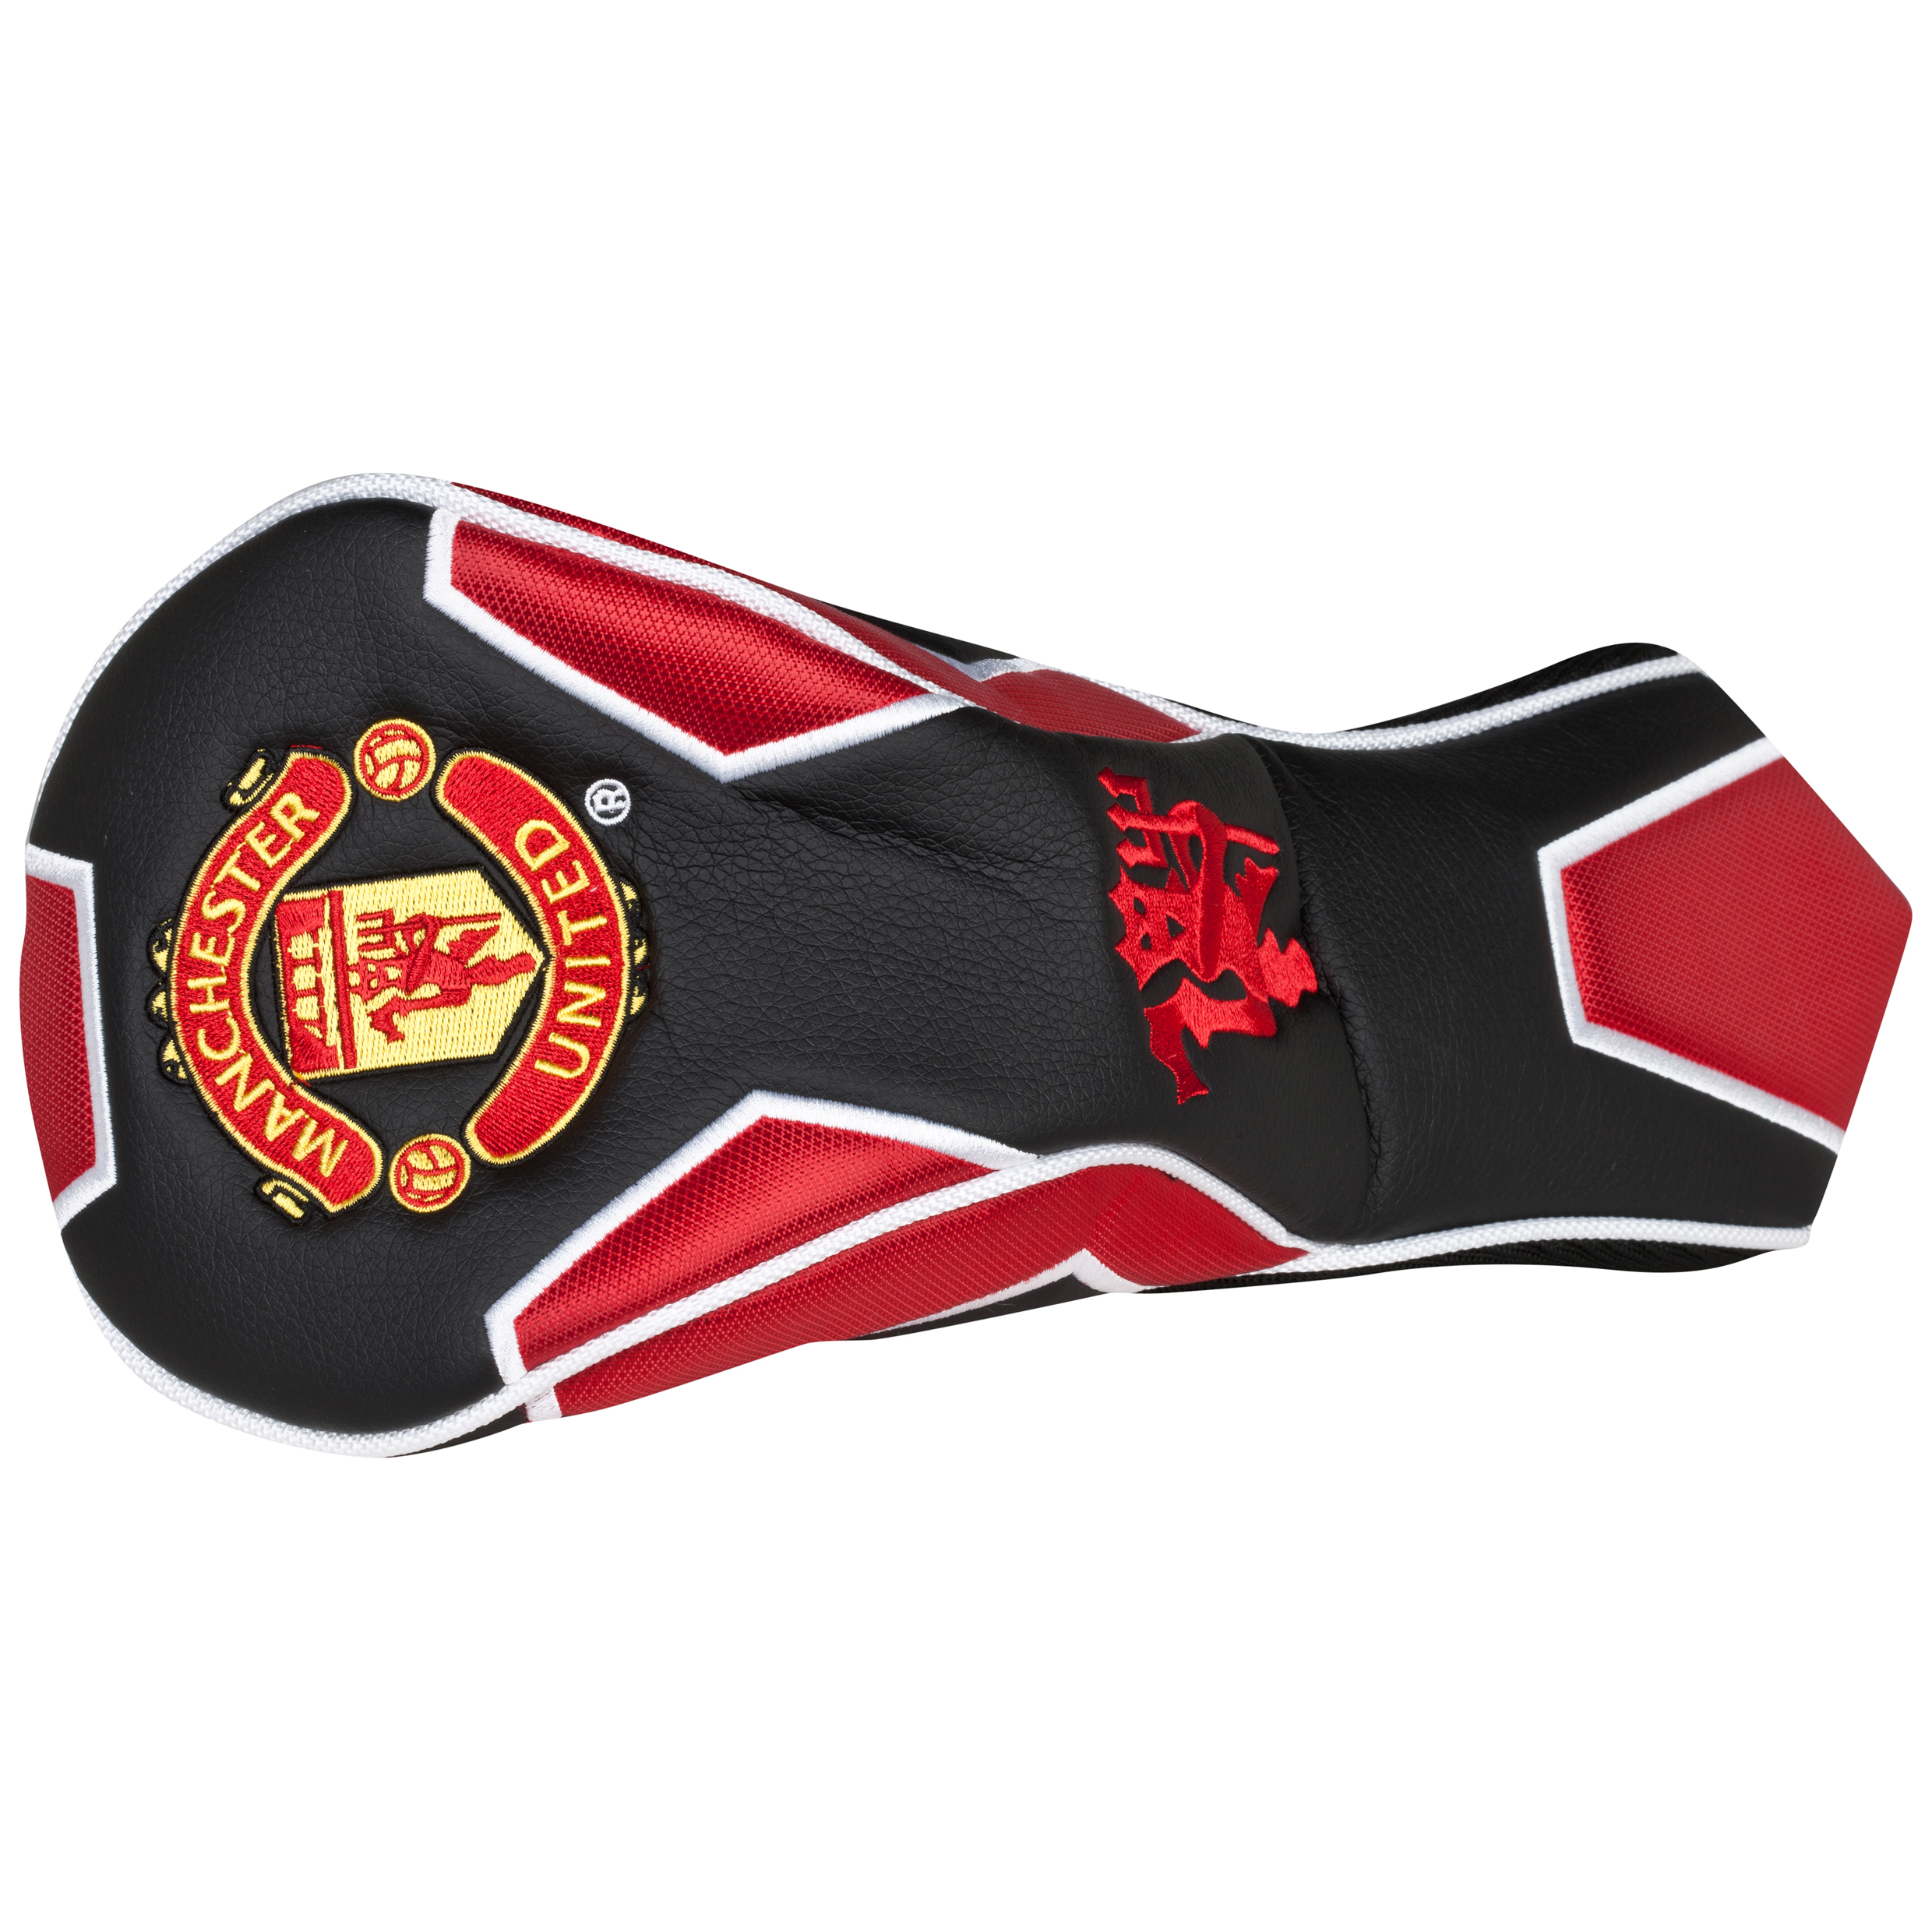 Manchester United Executive Driver Head Cover